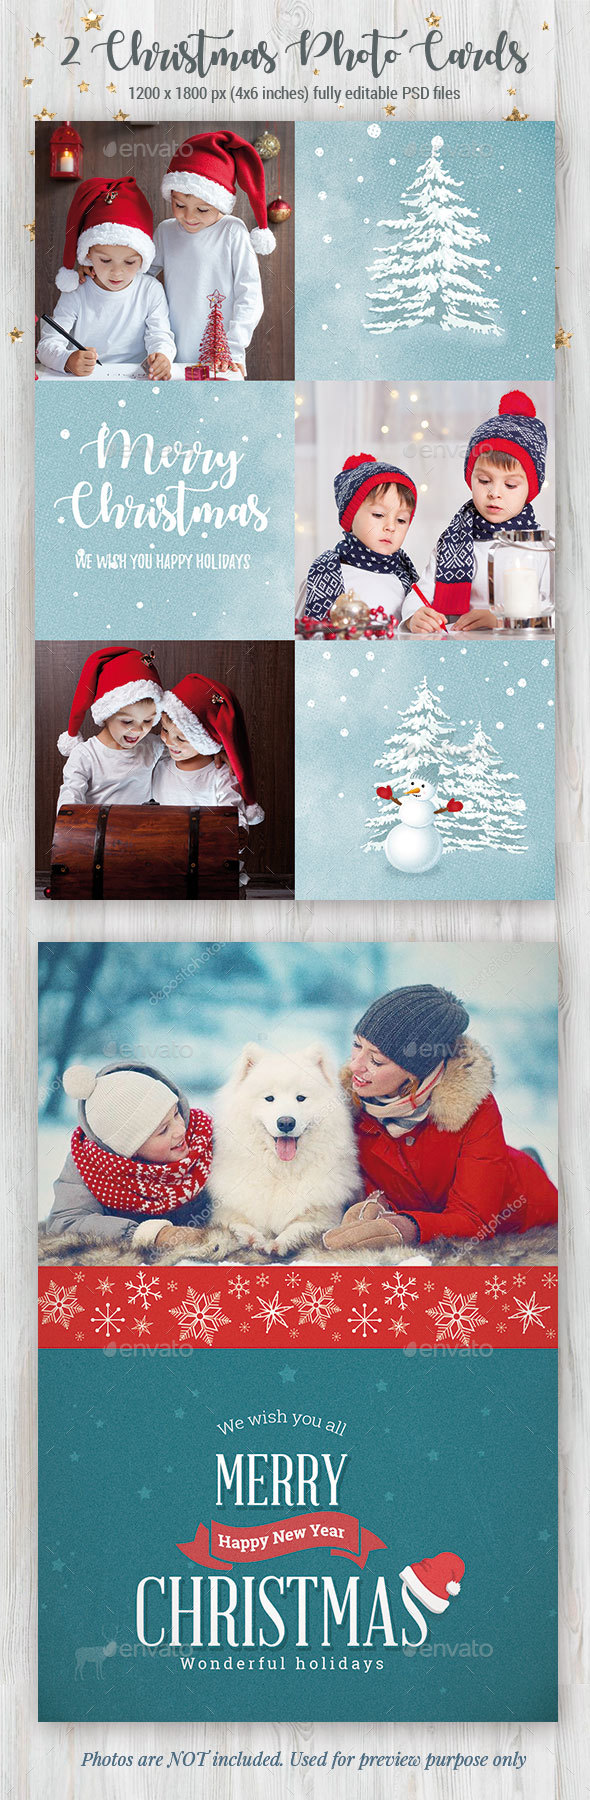 2 Christmas Photo Cards - Cards & Invites Print Templates